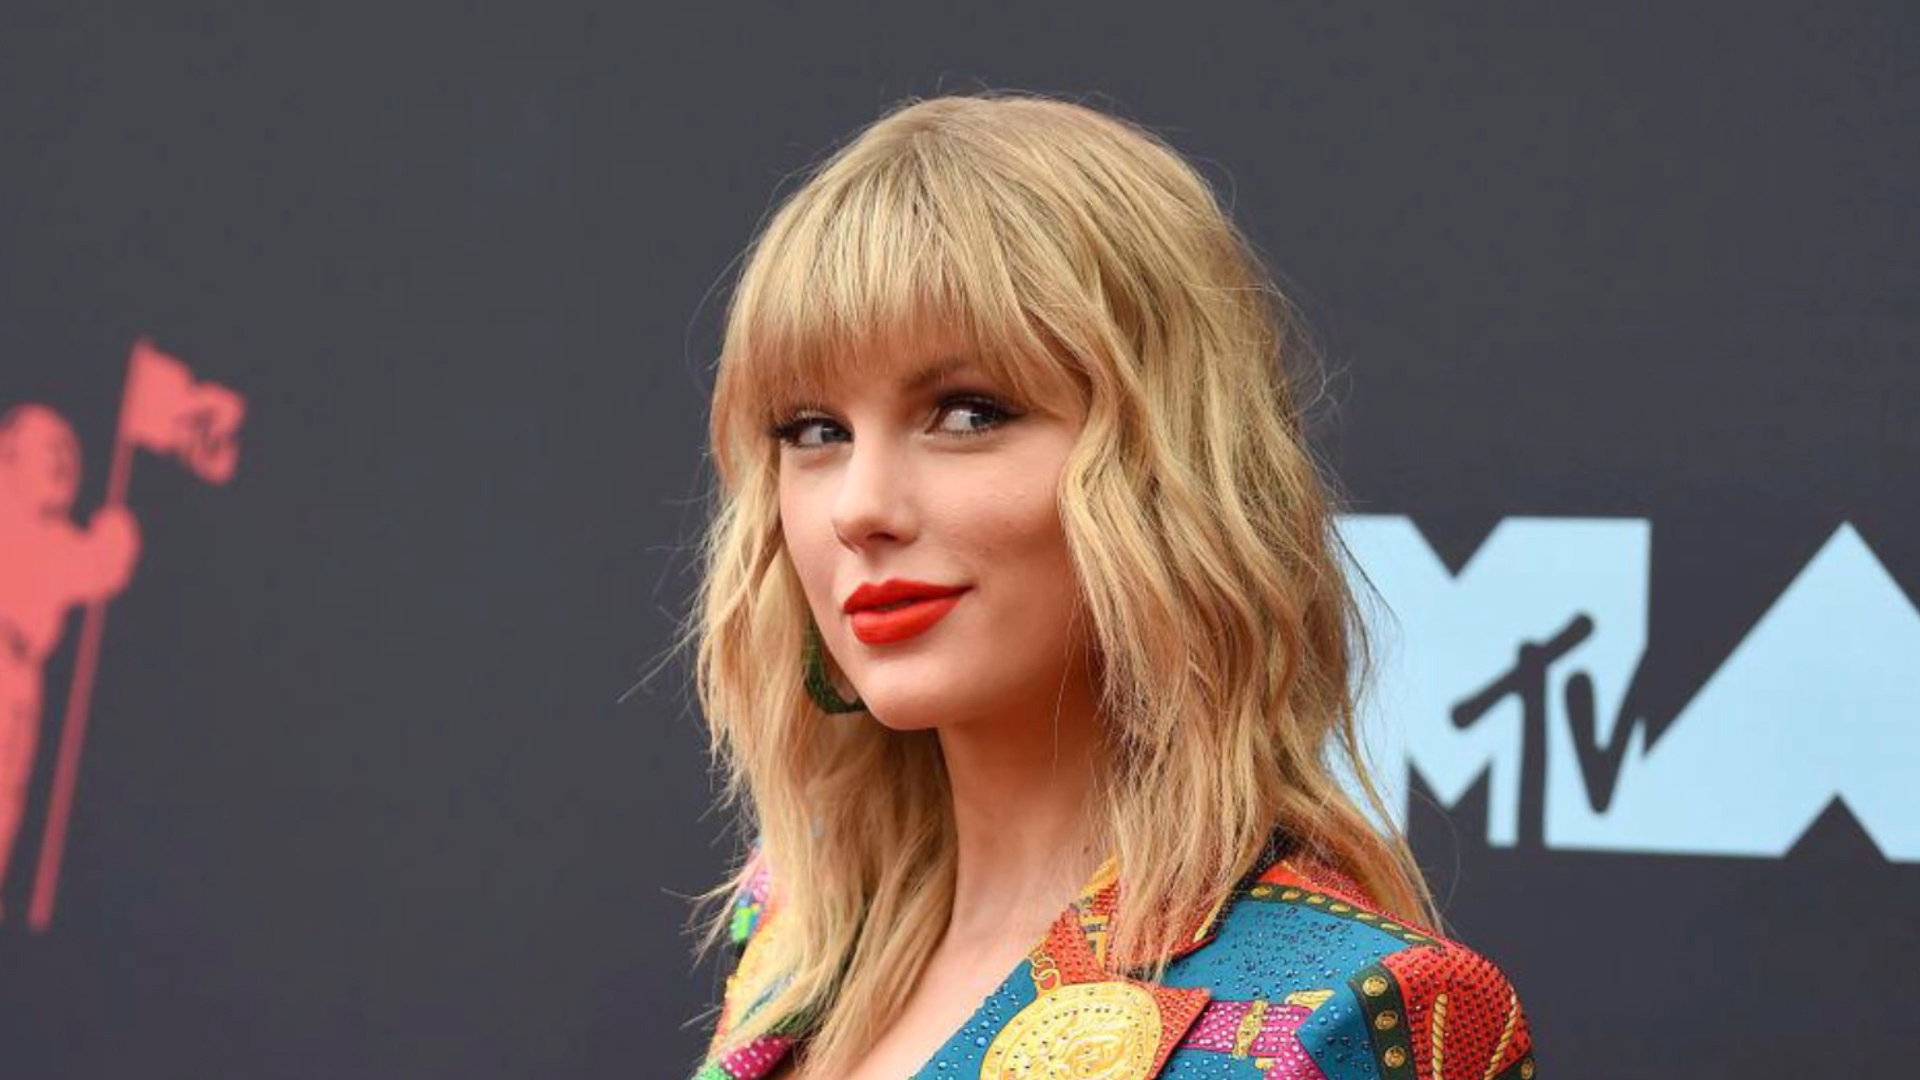 Taylor Swift Cancels Australia Horse Race Gig Amid Animal Activist Uproar